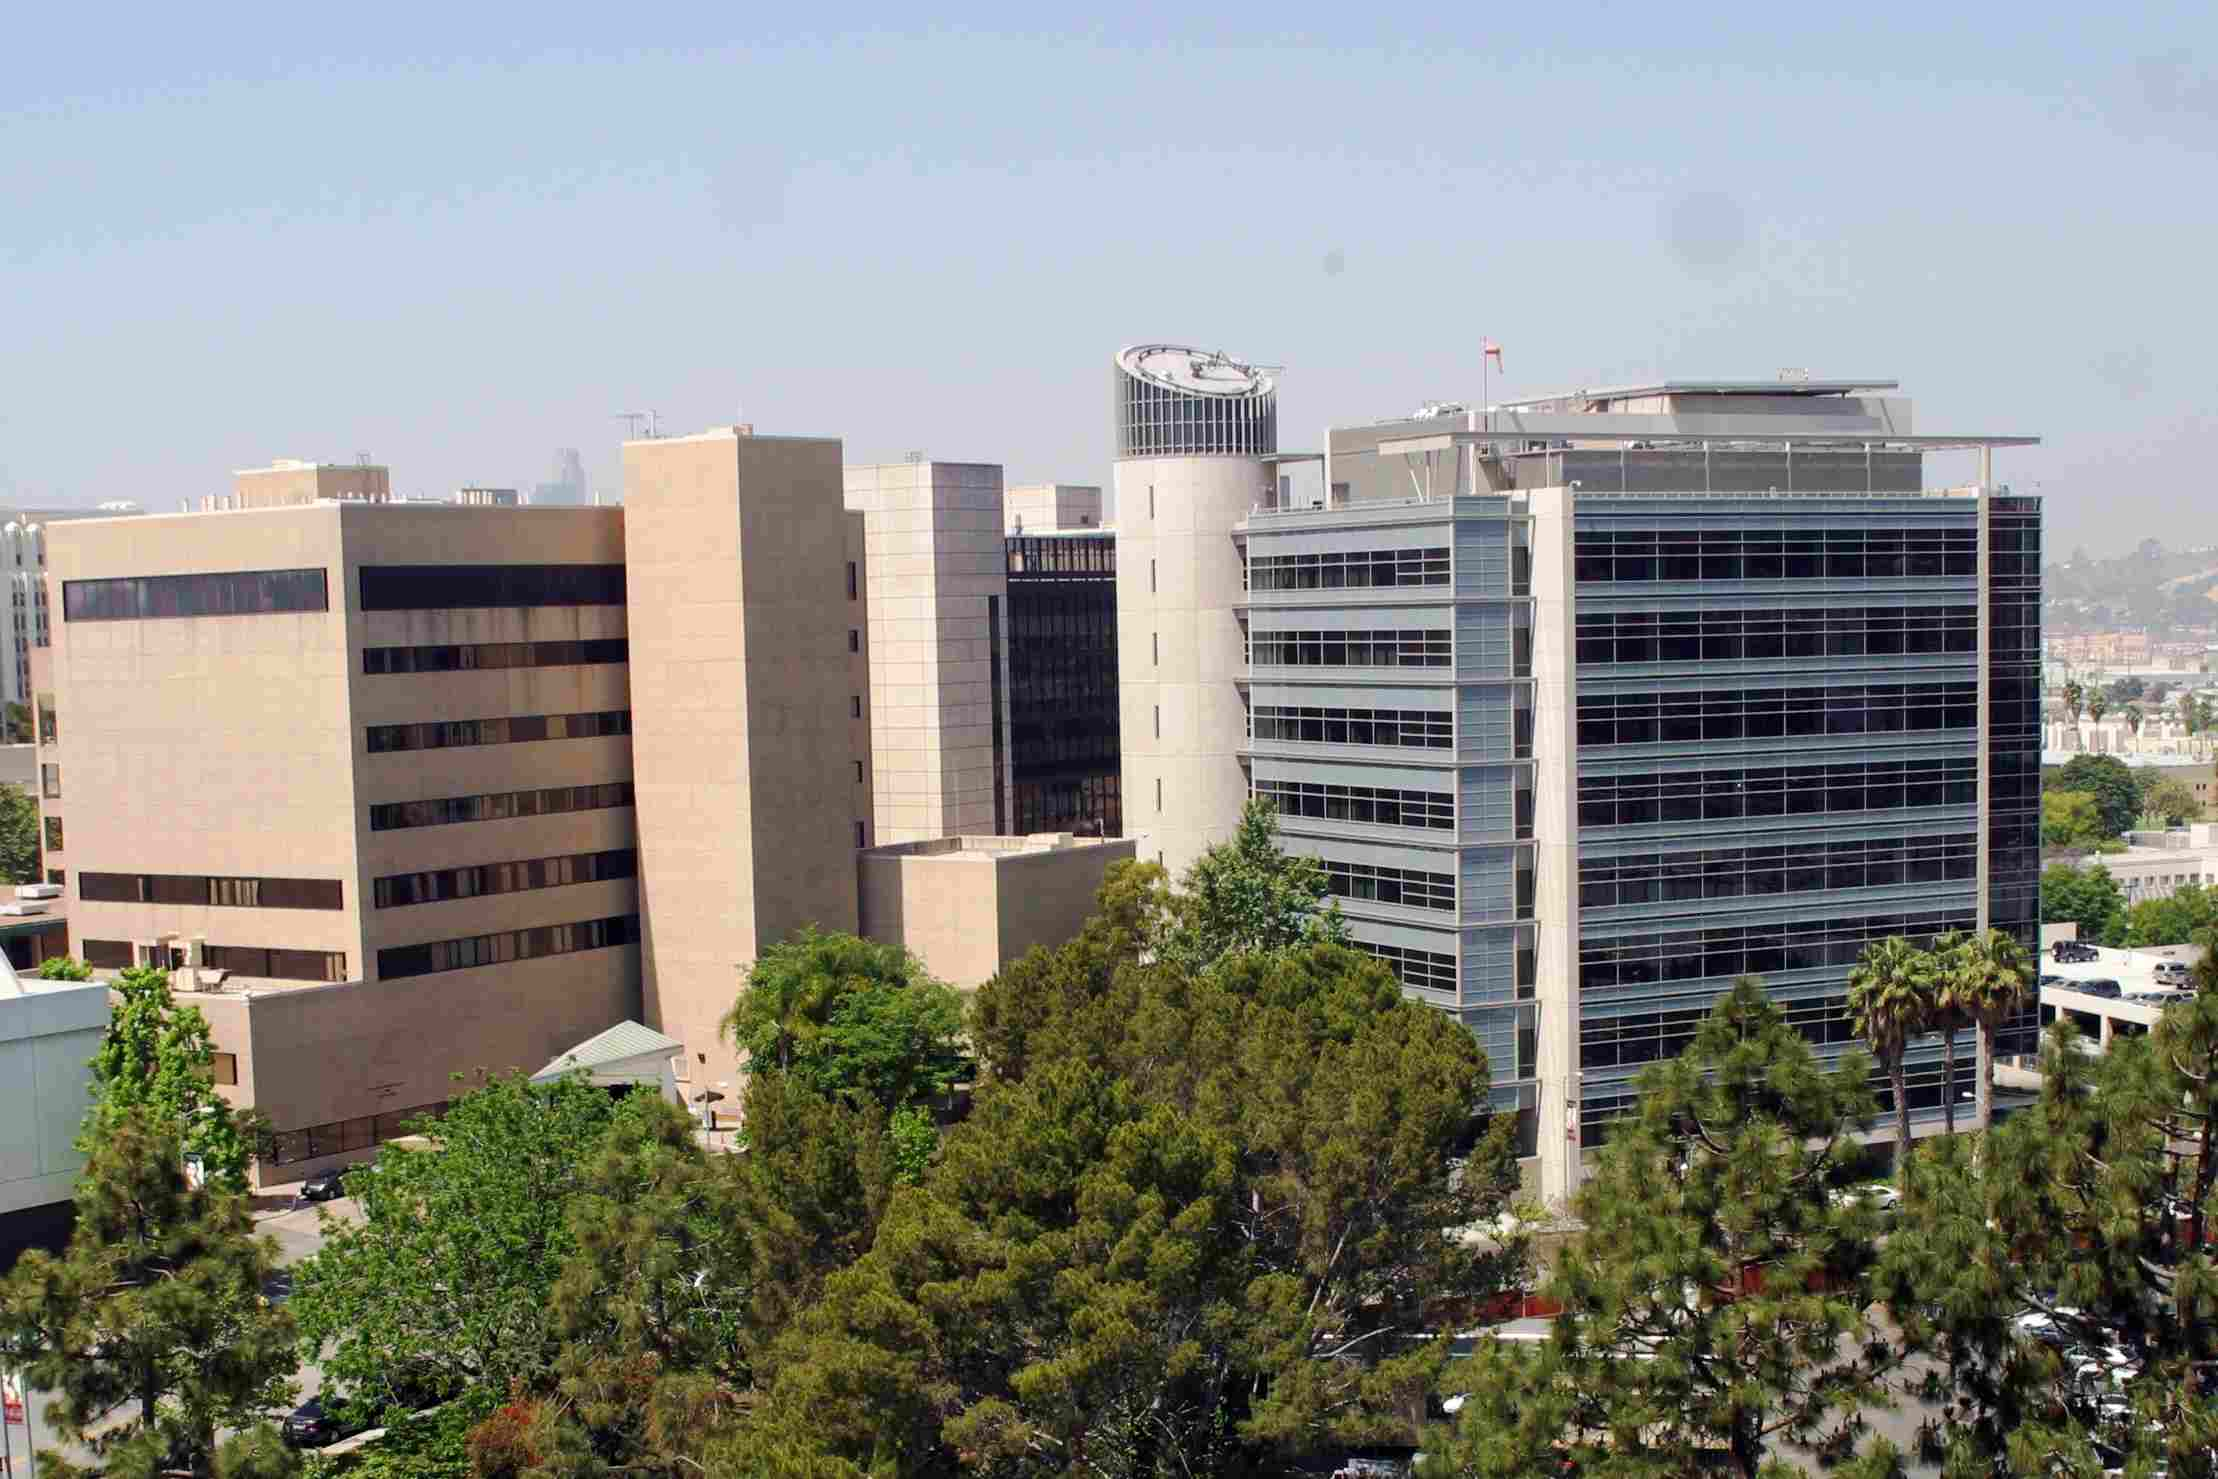 The USC Norris Cancer Center